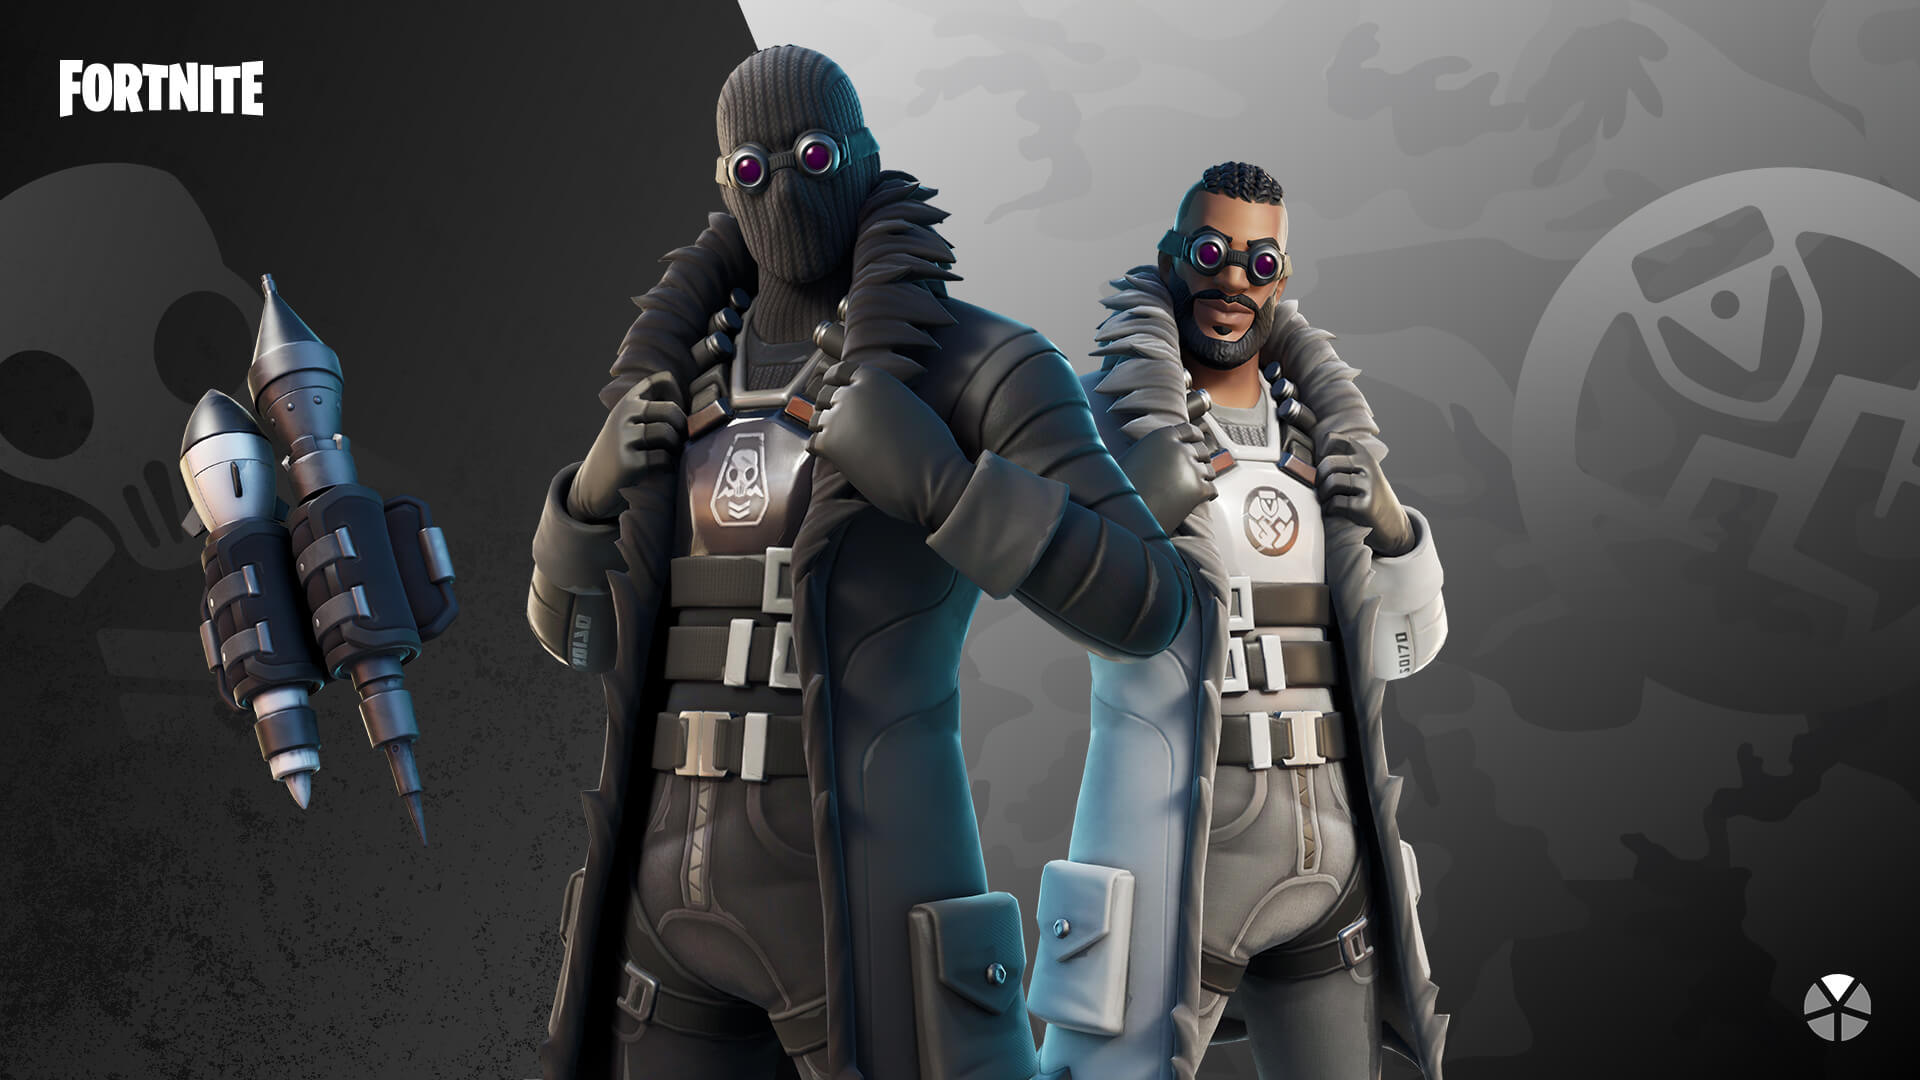 fortnite-renegade-shadow-outfit-blast-radius-back-bling.jpg